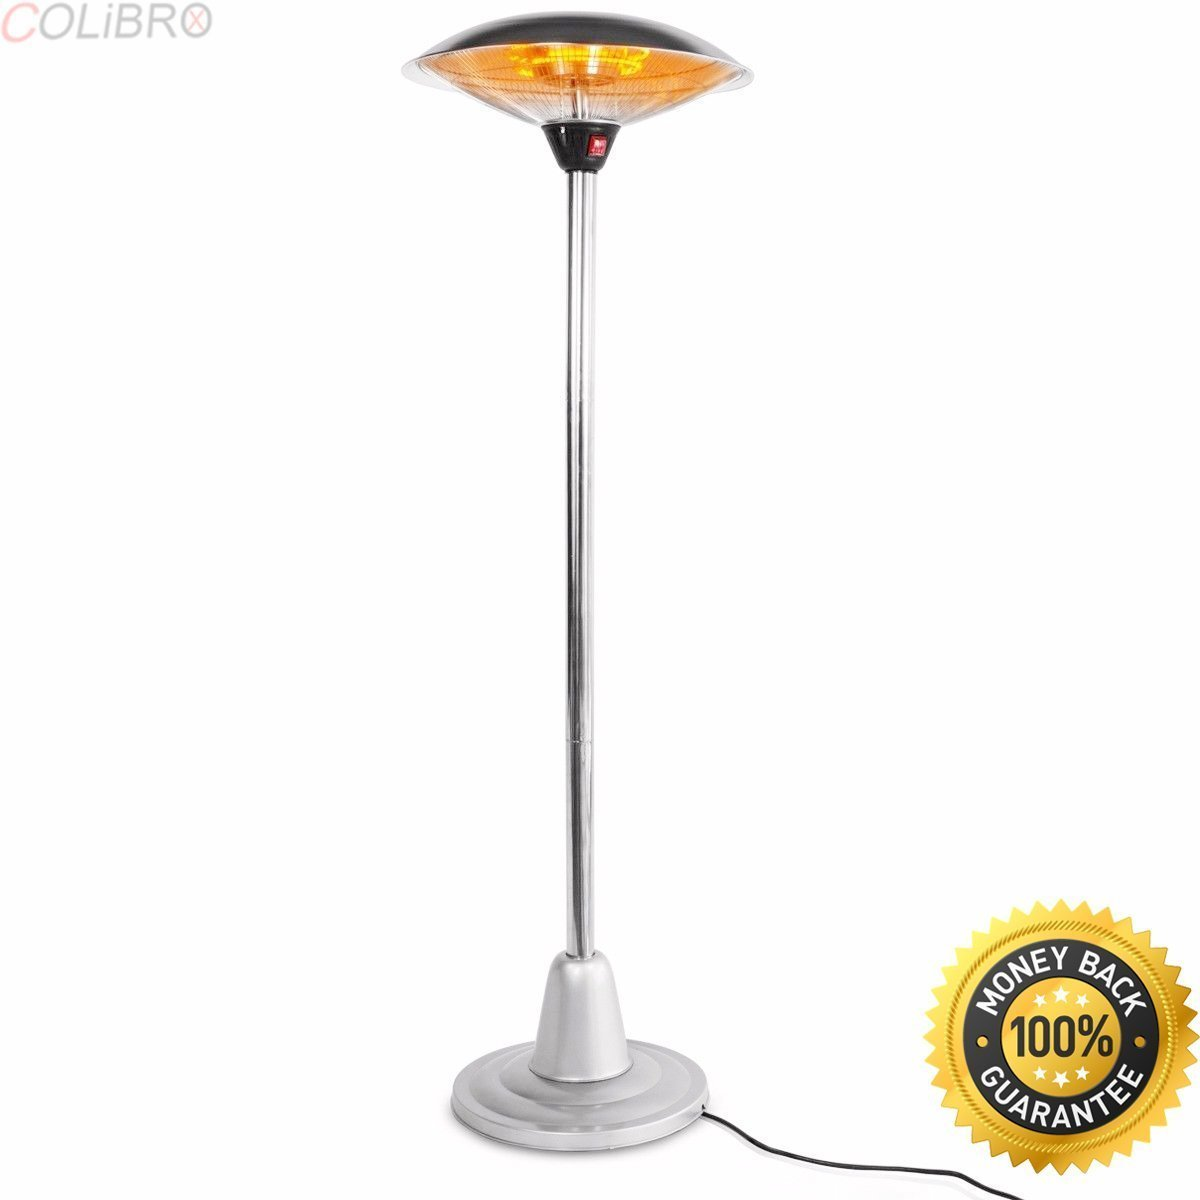 """COLIBROX--24"""" Electric Patio Heater Outdoor Free Stand Infrared Radiant adjustable height. electric patio heater reviews. outdoor heater home depot. home depot electric patio heater."""